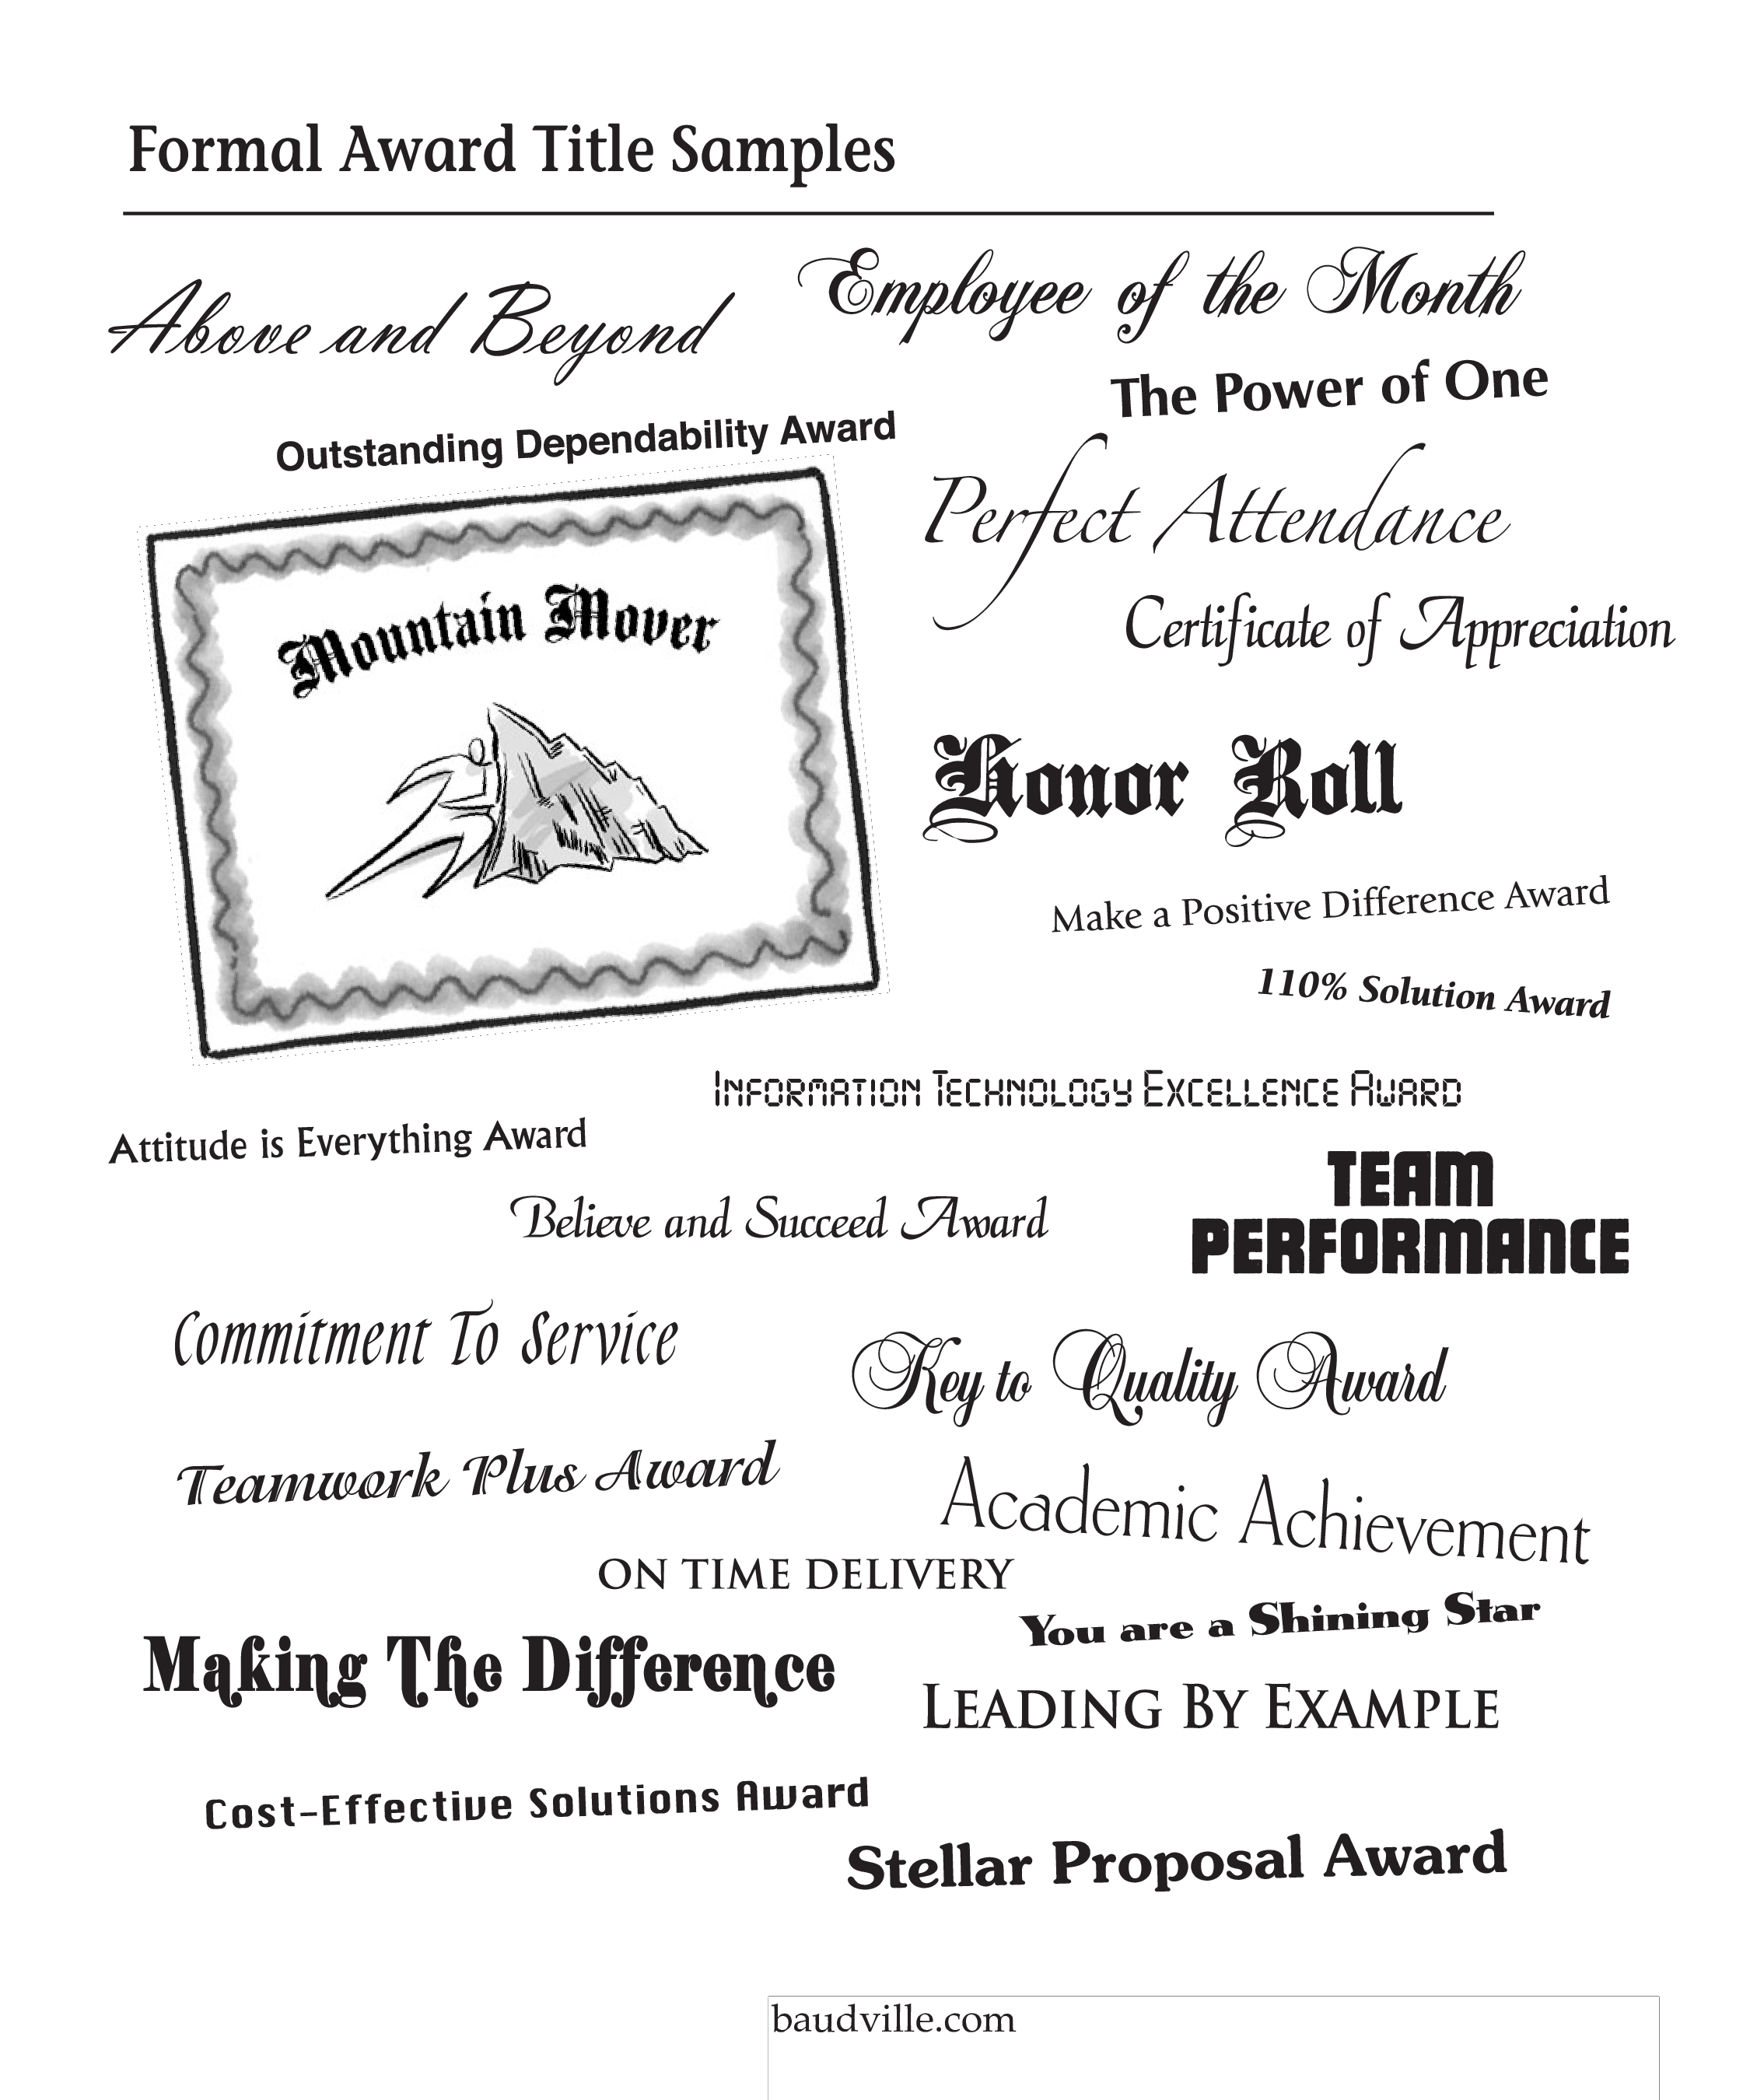 Free Sample Employee Recognition Award Certificate Templates At